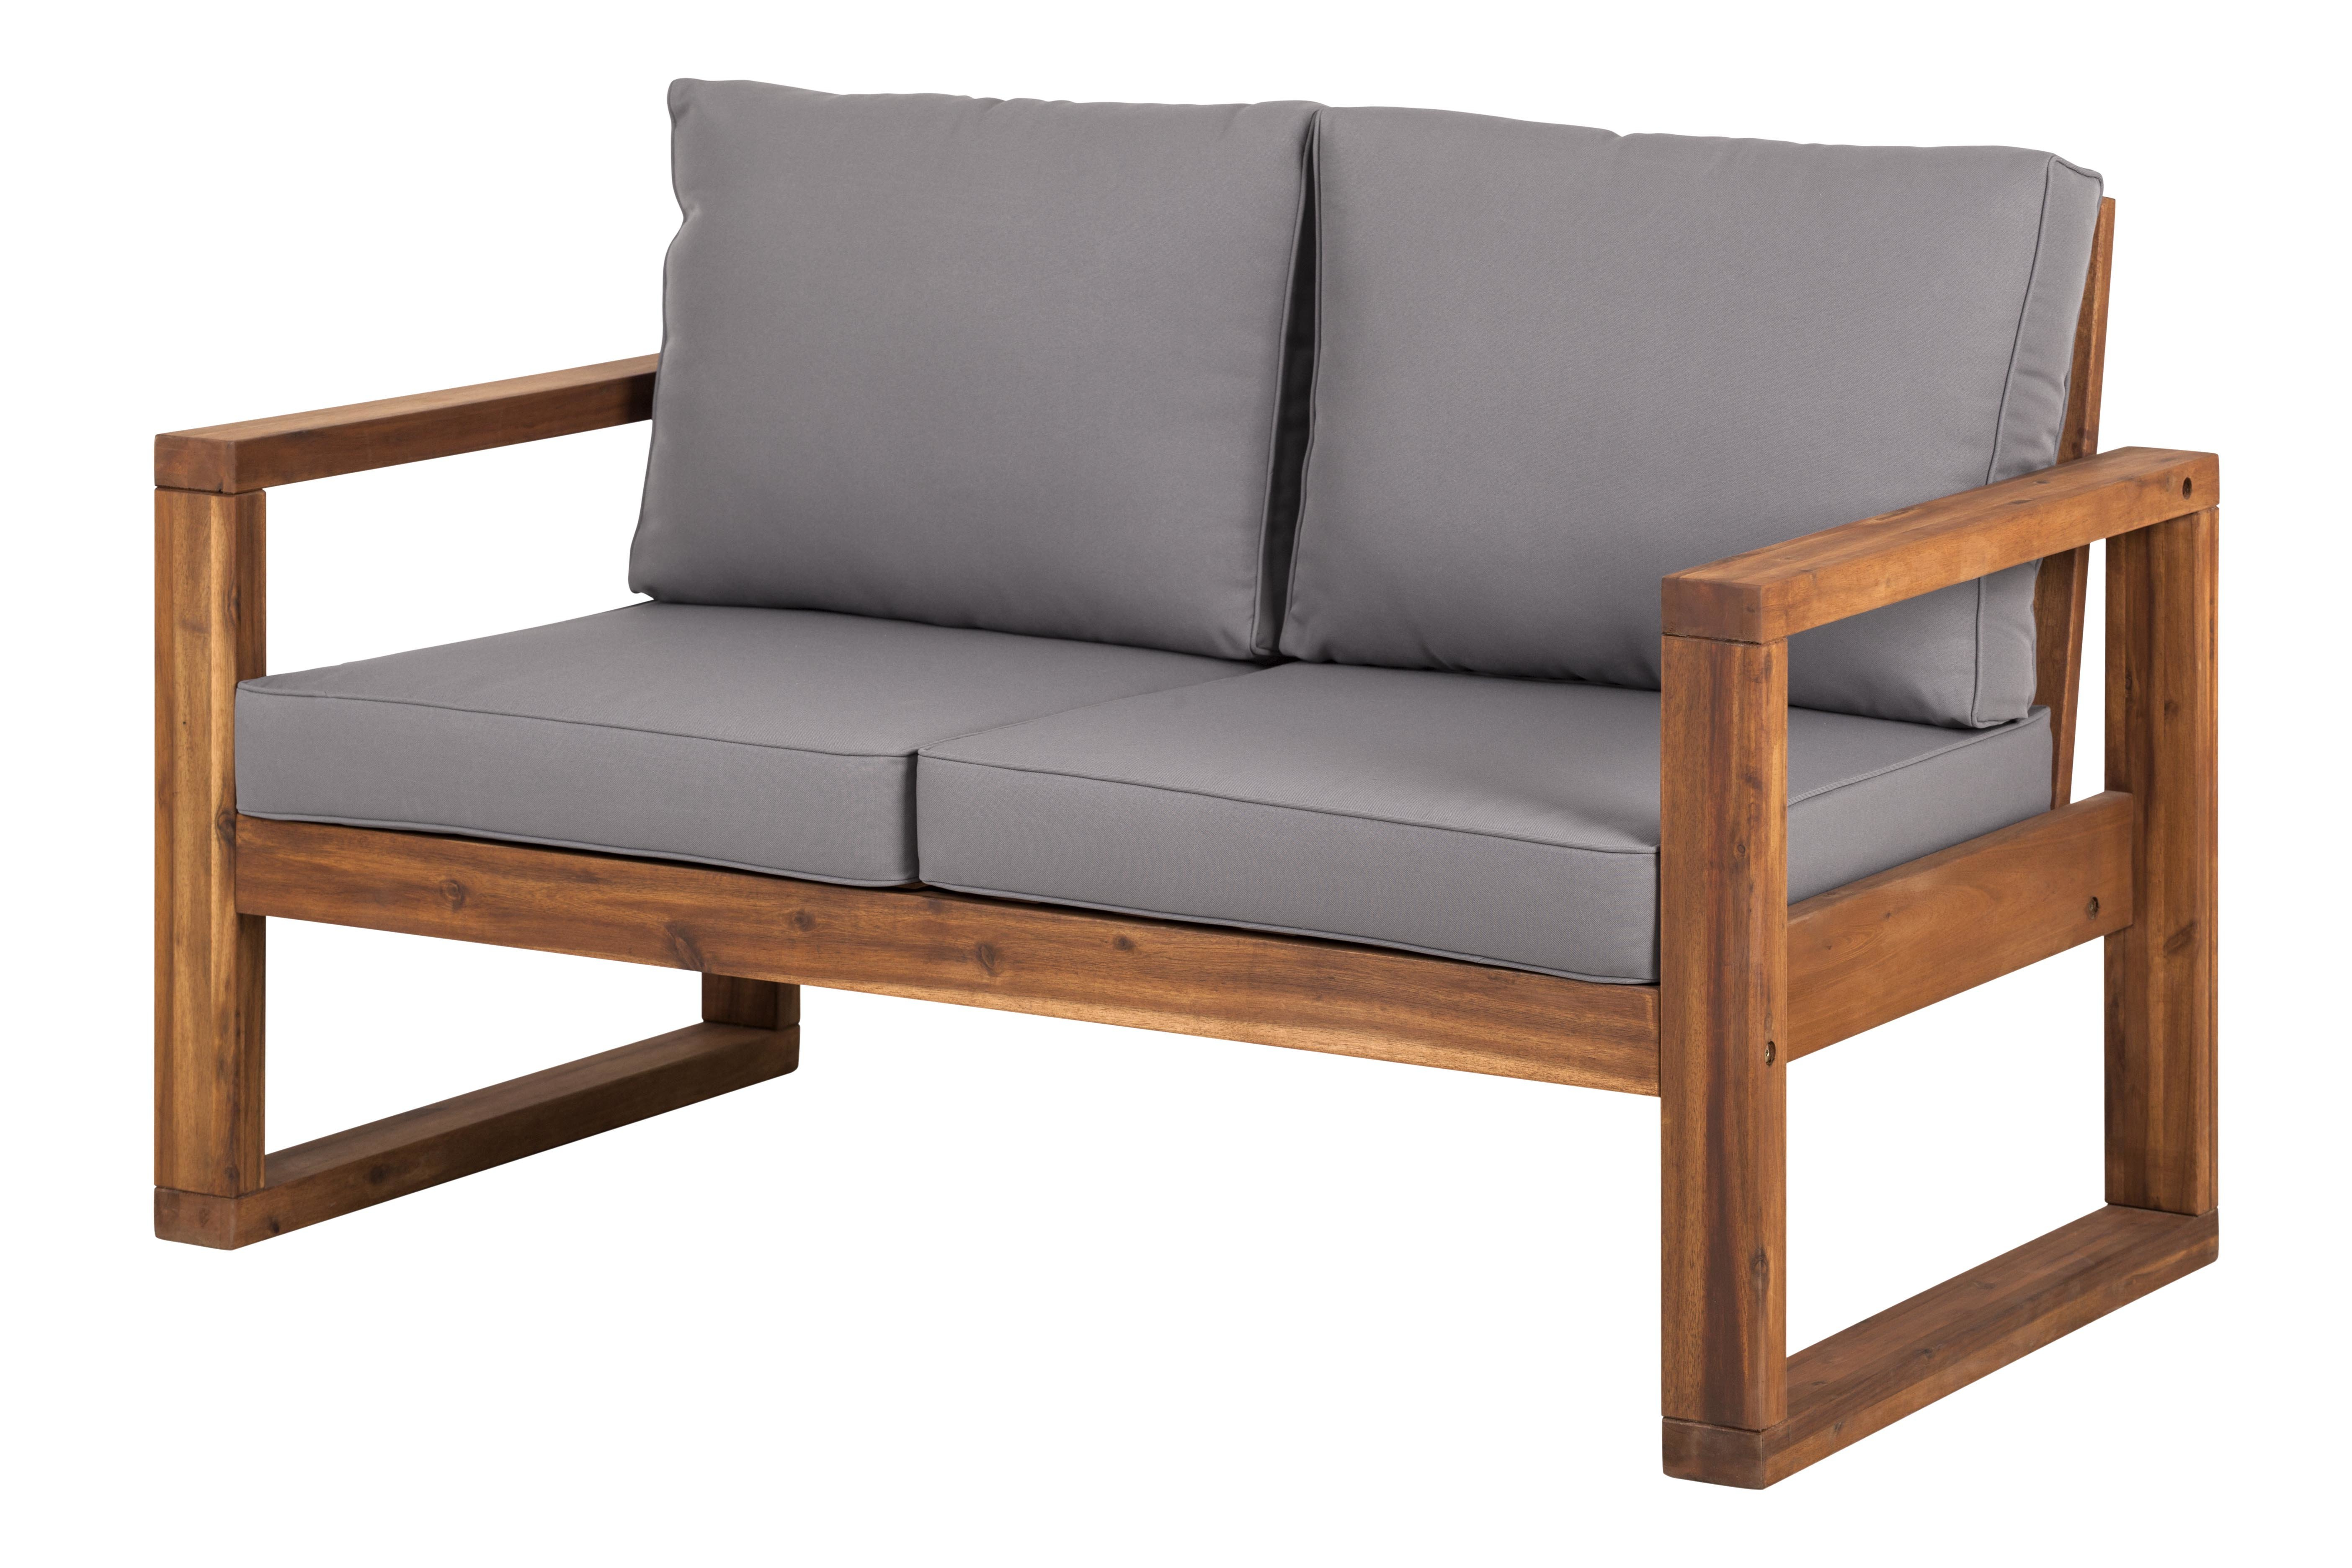 Fashionable Montford Teak Loveseats With Cushions With Regard To Lyall Loveseat With Cushion (View 3 of 20)